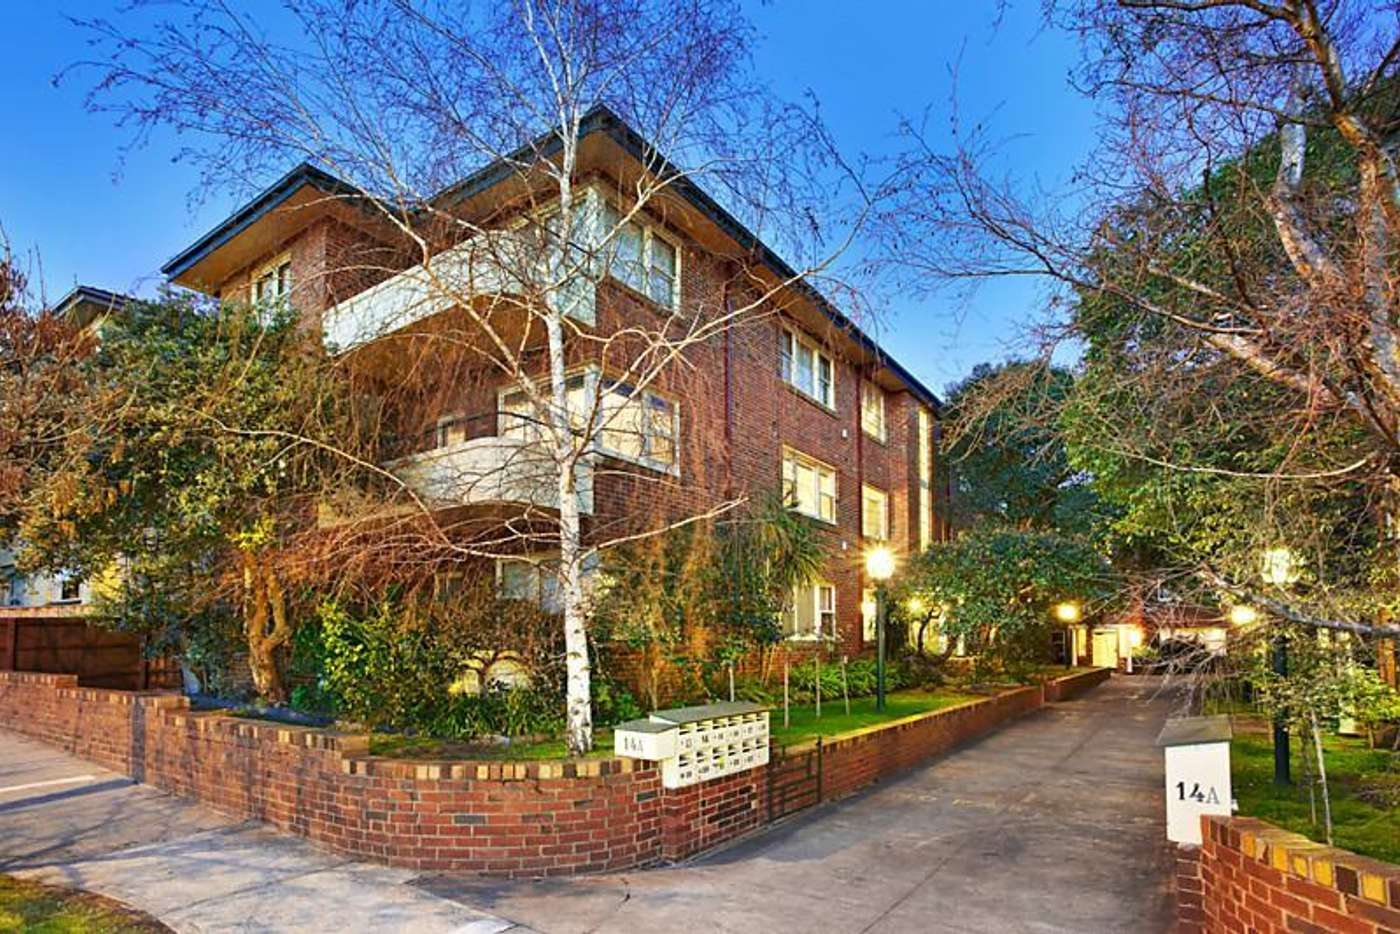 Main view of Homely apartment listing, 16/14A Chapel Street, St Kilda VIC 3182